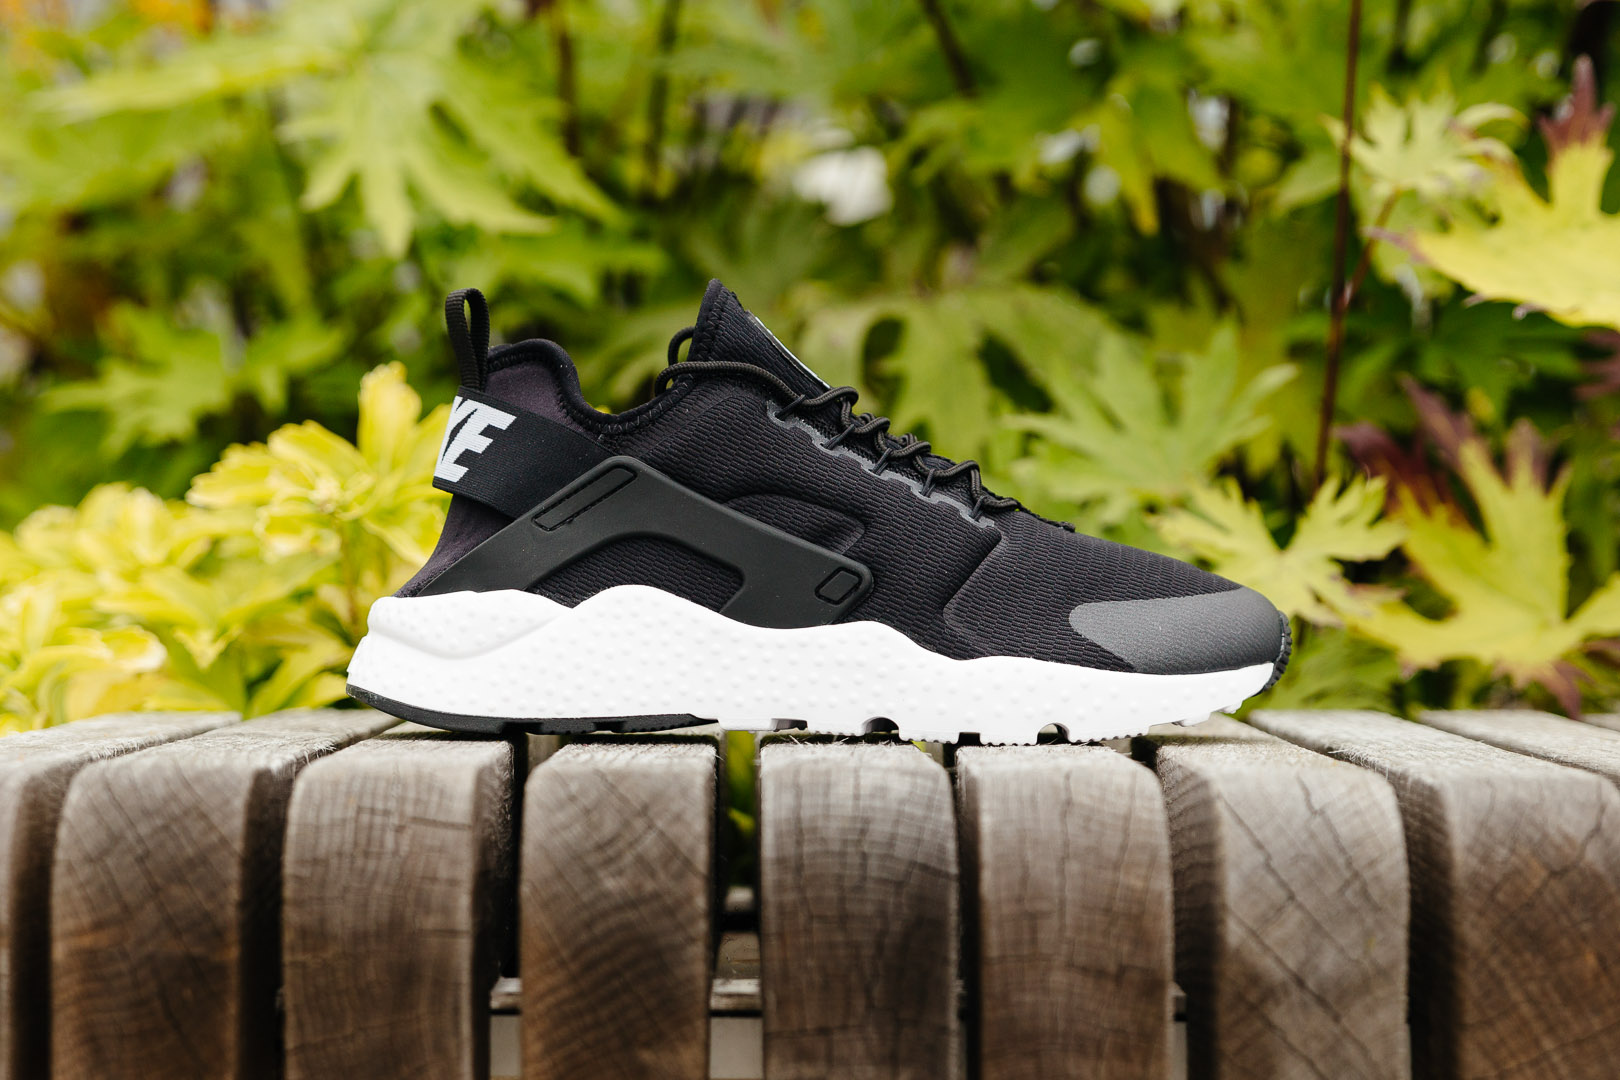 NIKE-AIR-HUARACHE-RUN-ULTRA-FEATURE-1965-INS-SoleHeaven-BLACK-WHITE.jpg